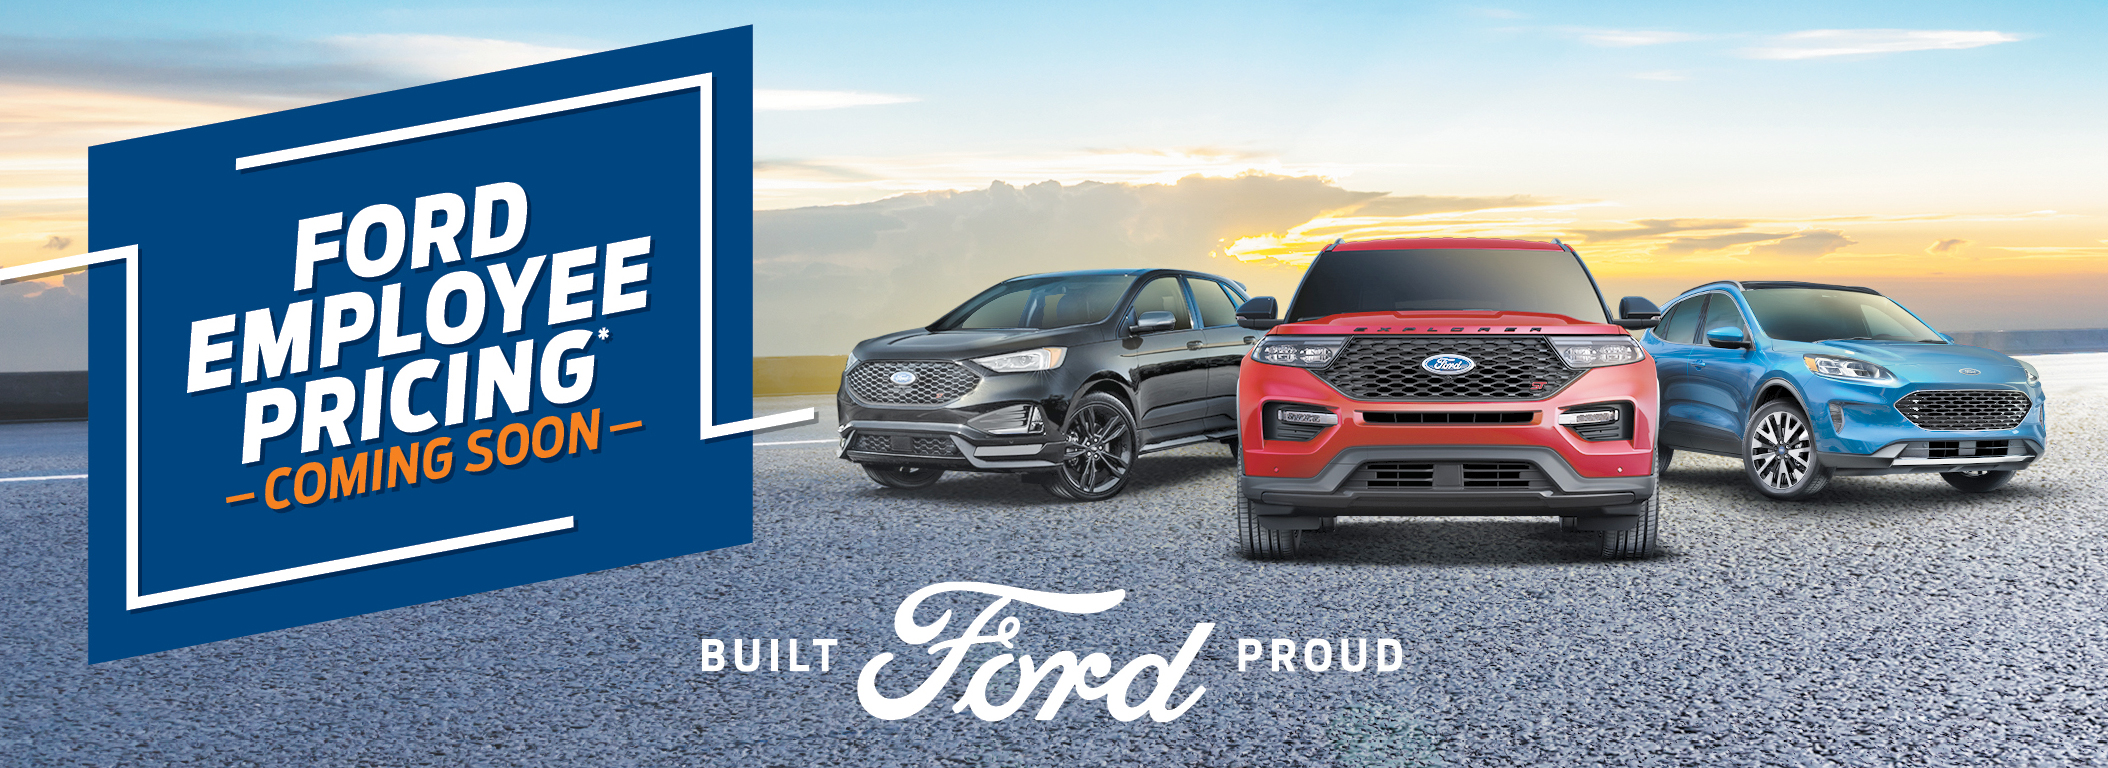 Ford Employee Banner 2020 Coming Soon